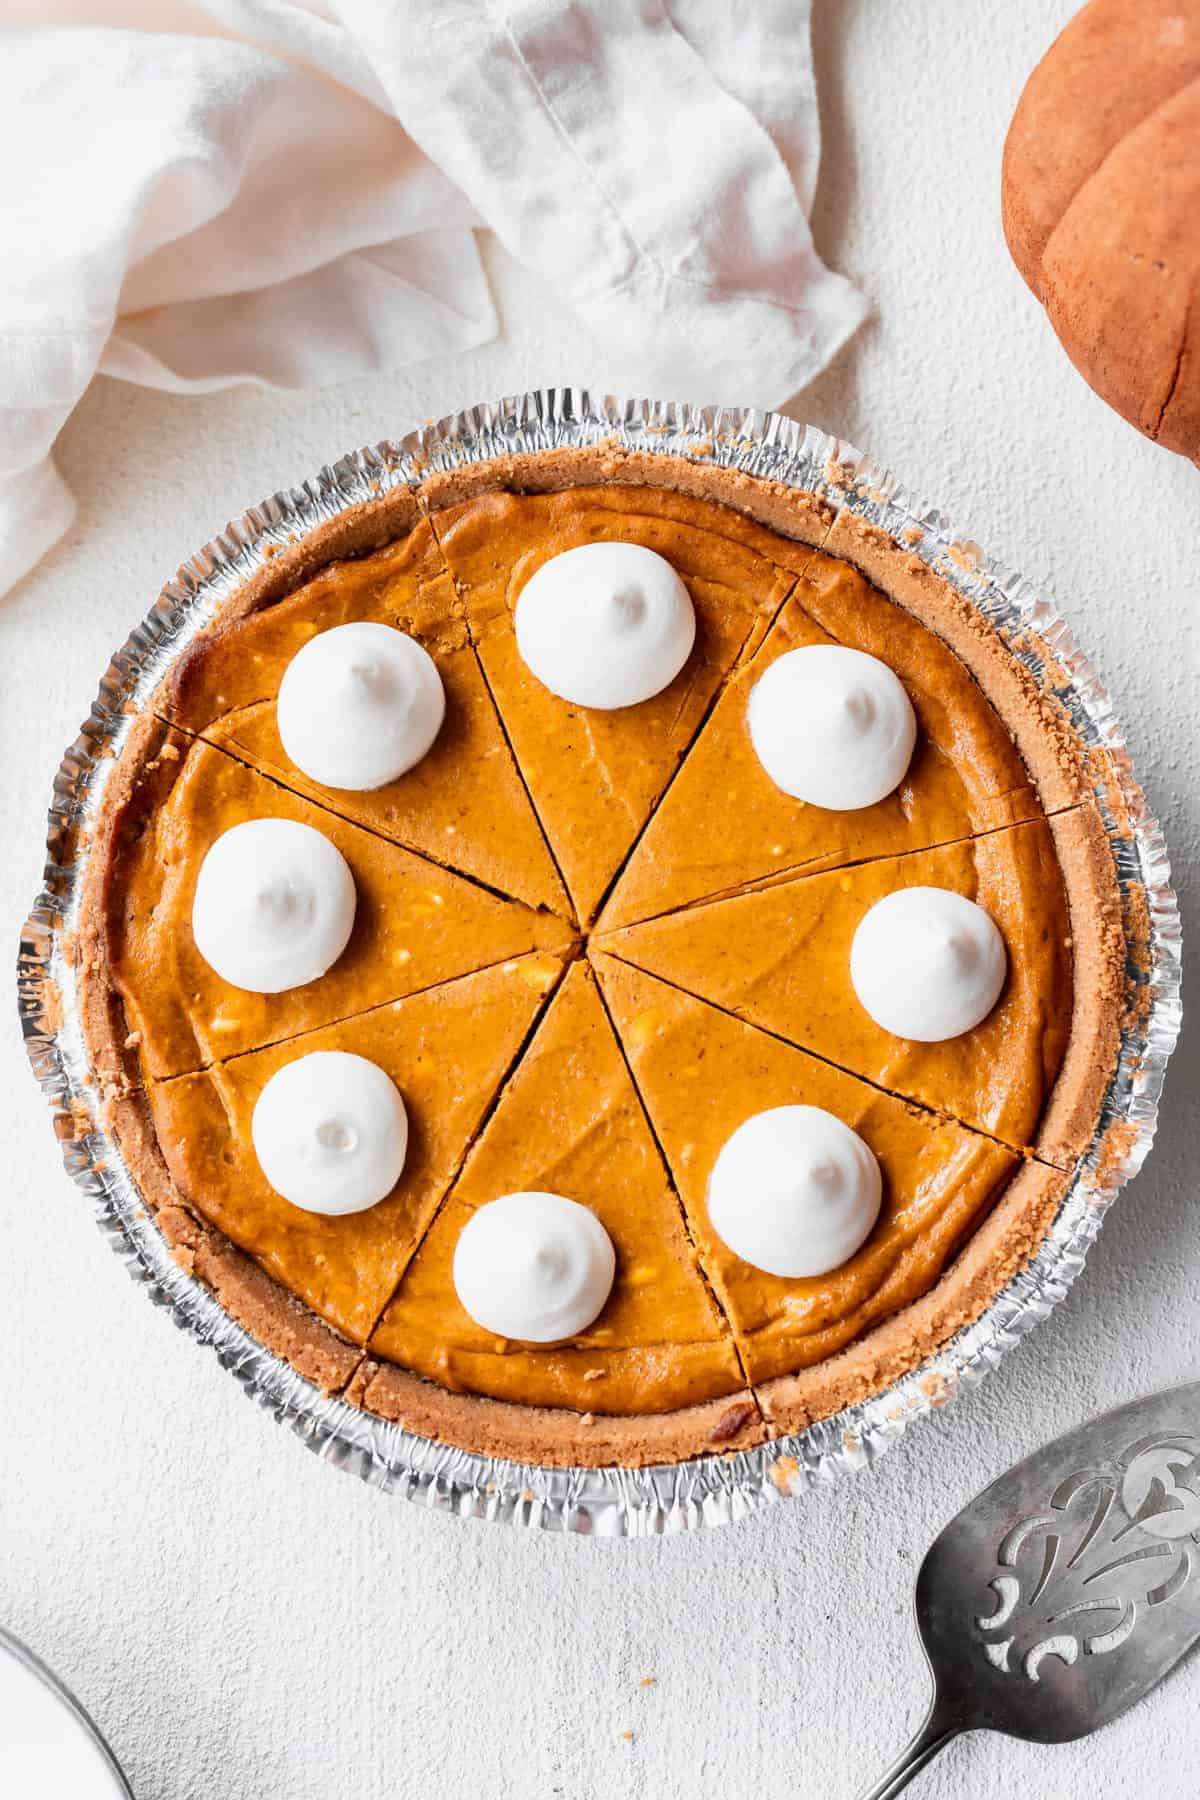 pumpkin cheesecake in a pie tin with dollops of whipped cream on the top